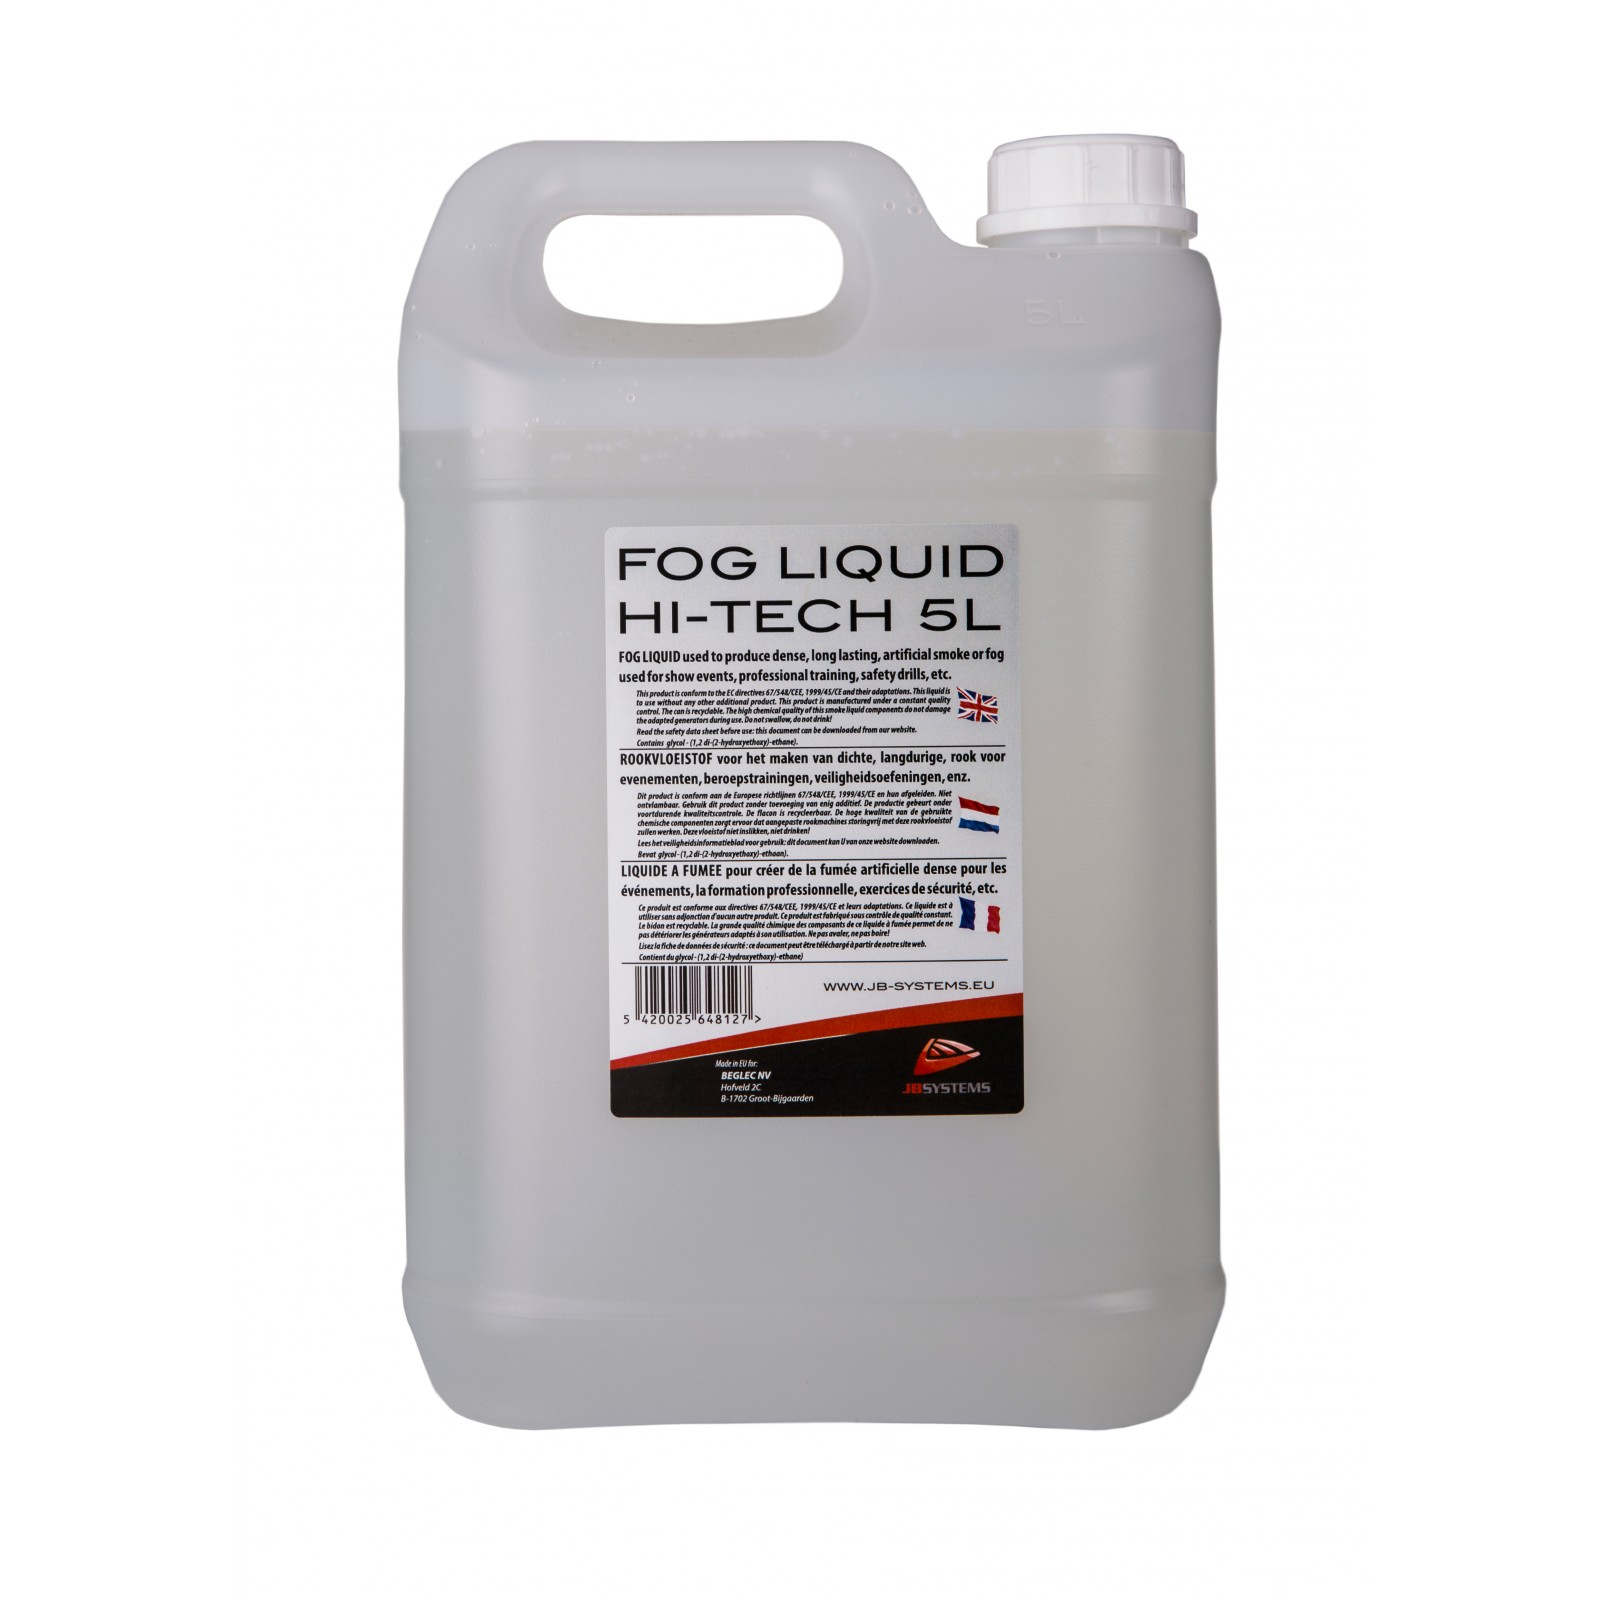 briteq fog liquid hi tech 5l fog liquid. Black Bedroom Furniture Sets. Home Design Ideas